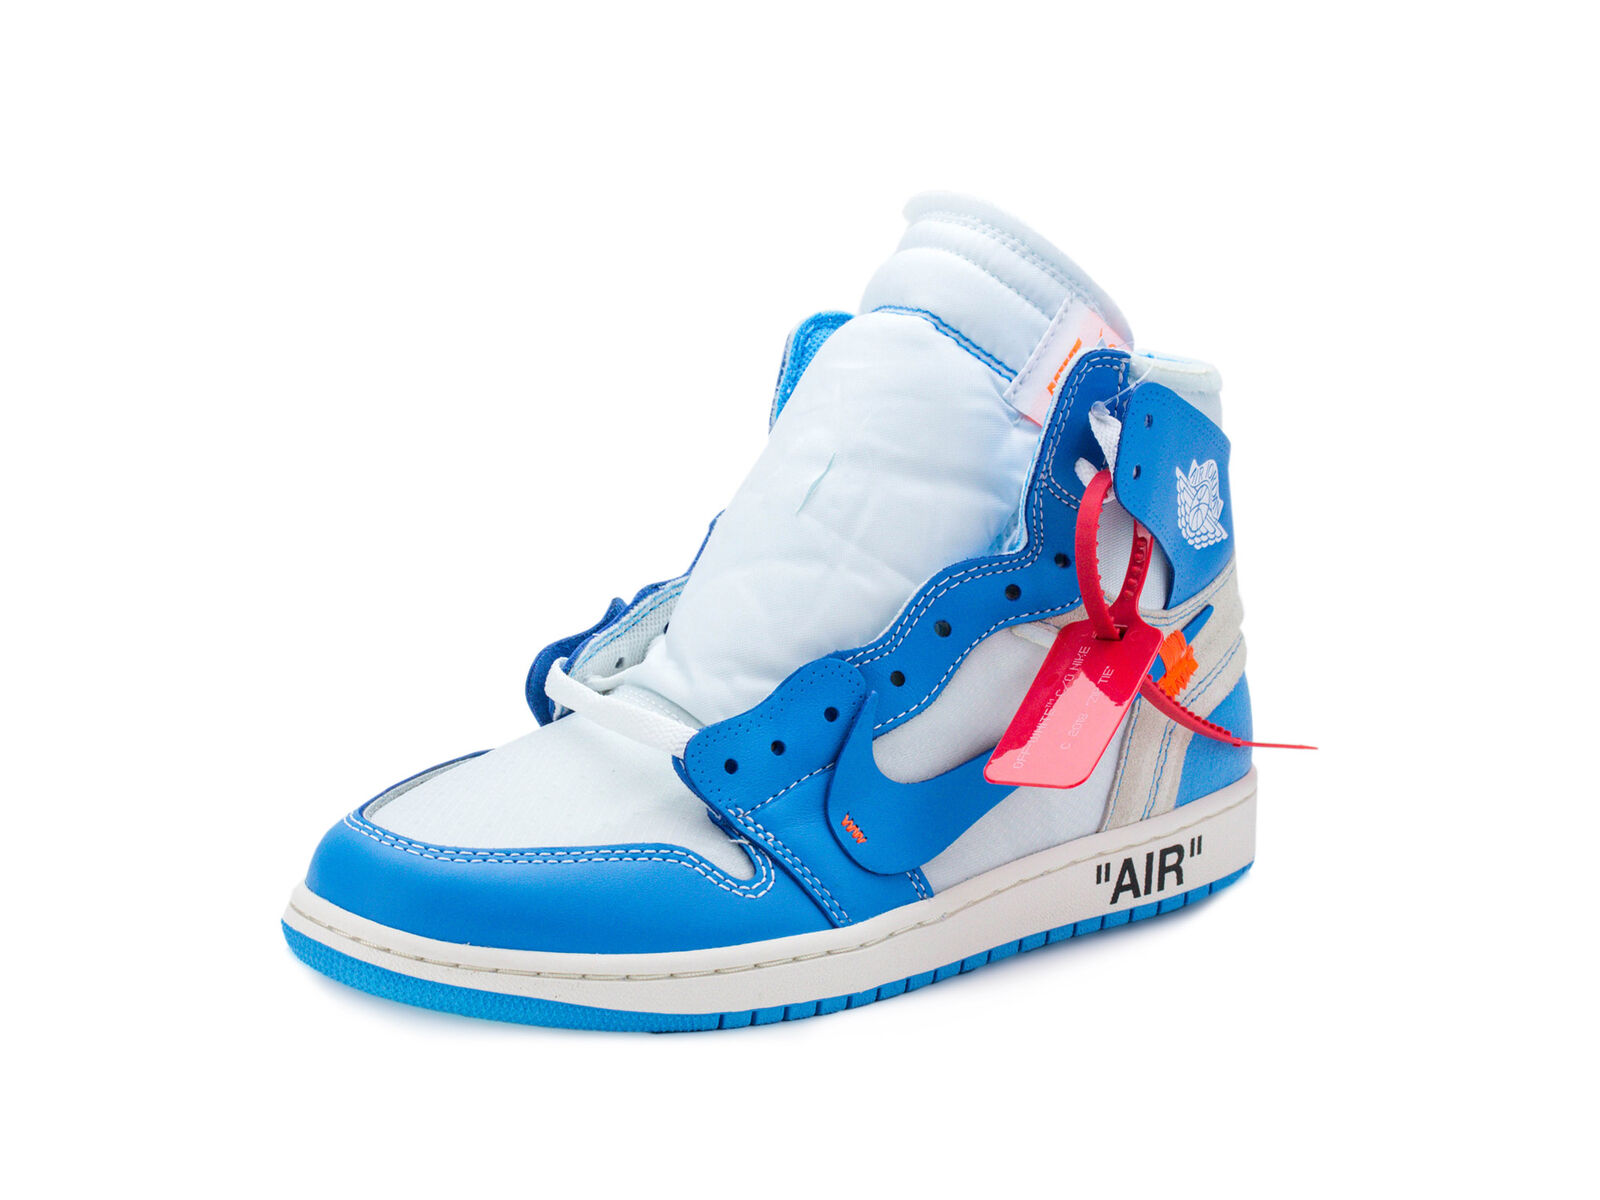 Nike Mens Air Jordan 1 X Off White NRG  UNC  White Dark Powder bluee AQ0818-148